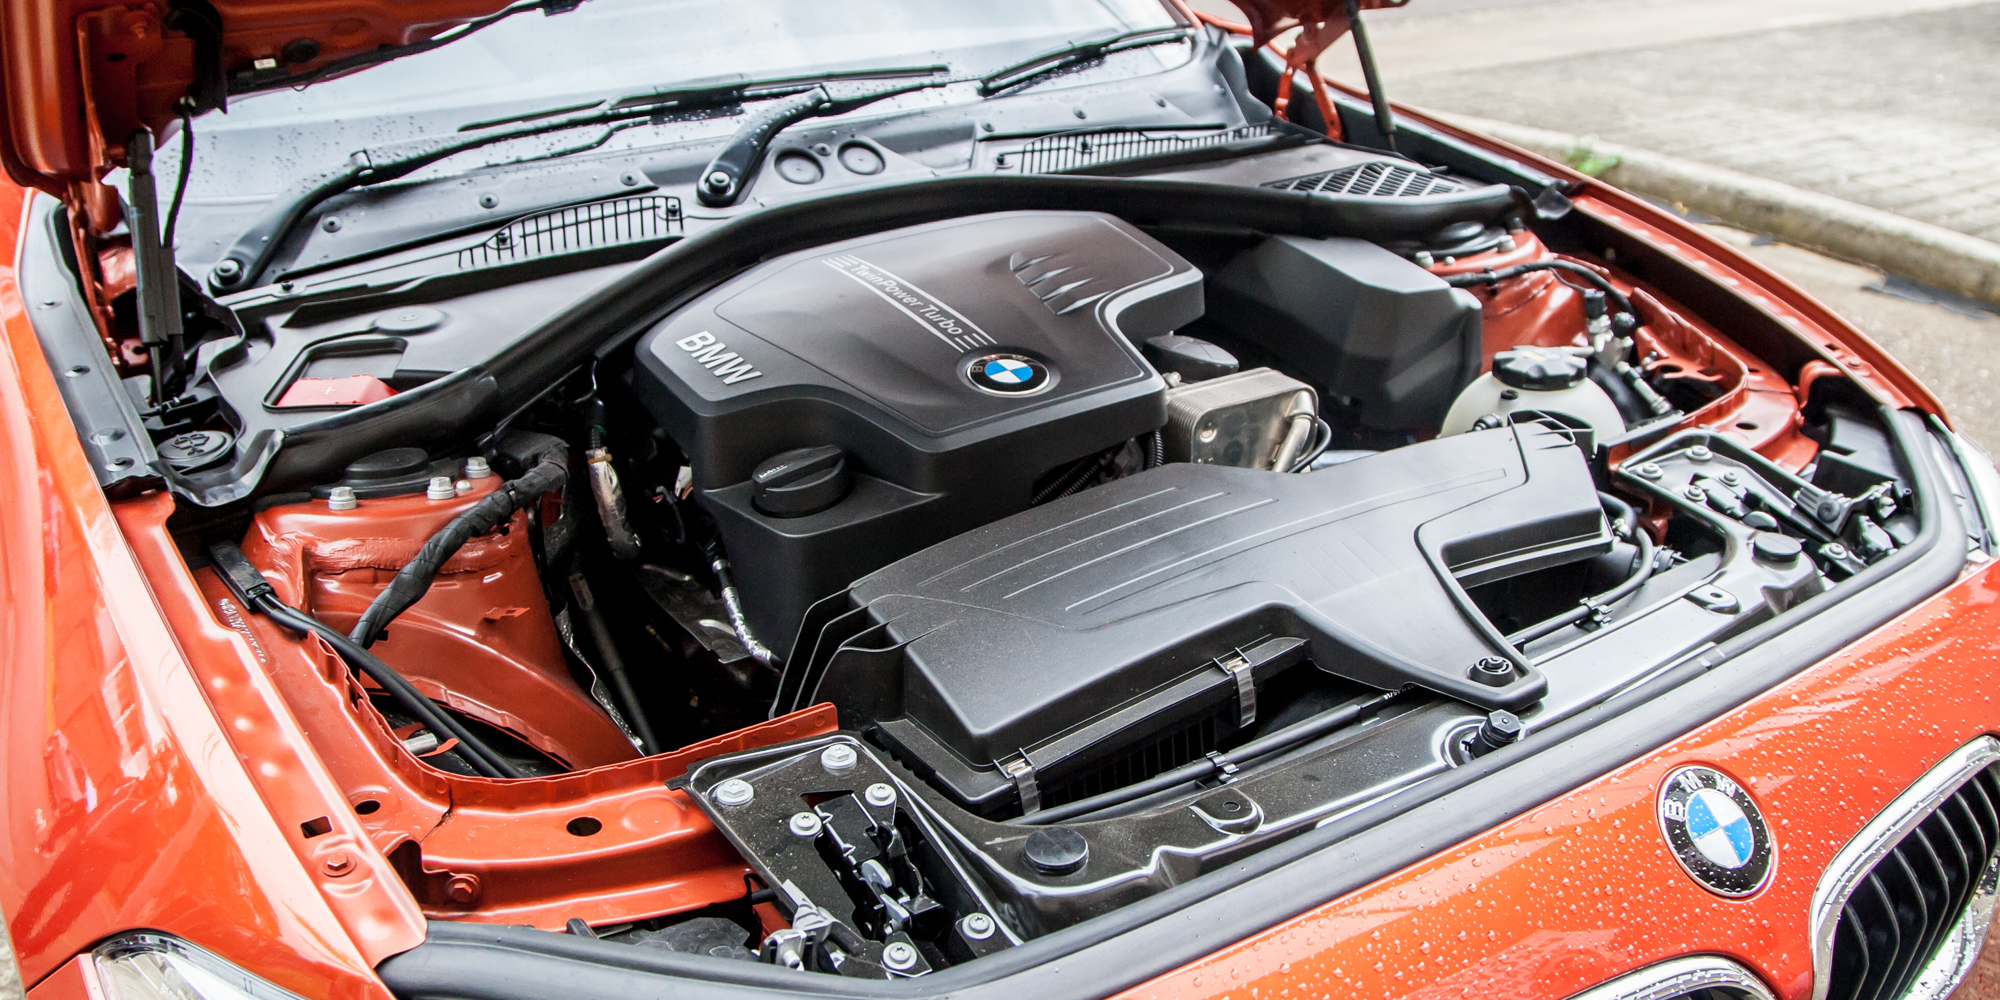 2015 Bmw 125i Engine (Photo 3 of 15)